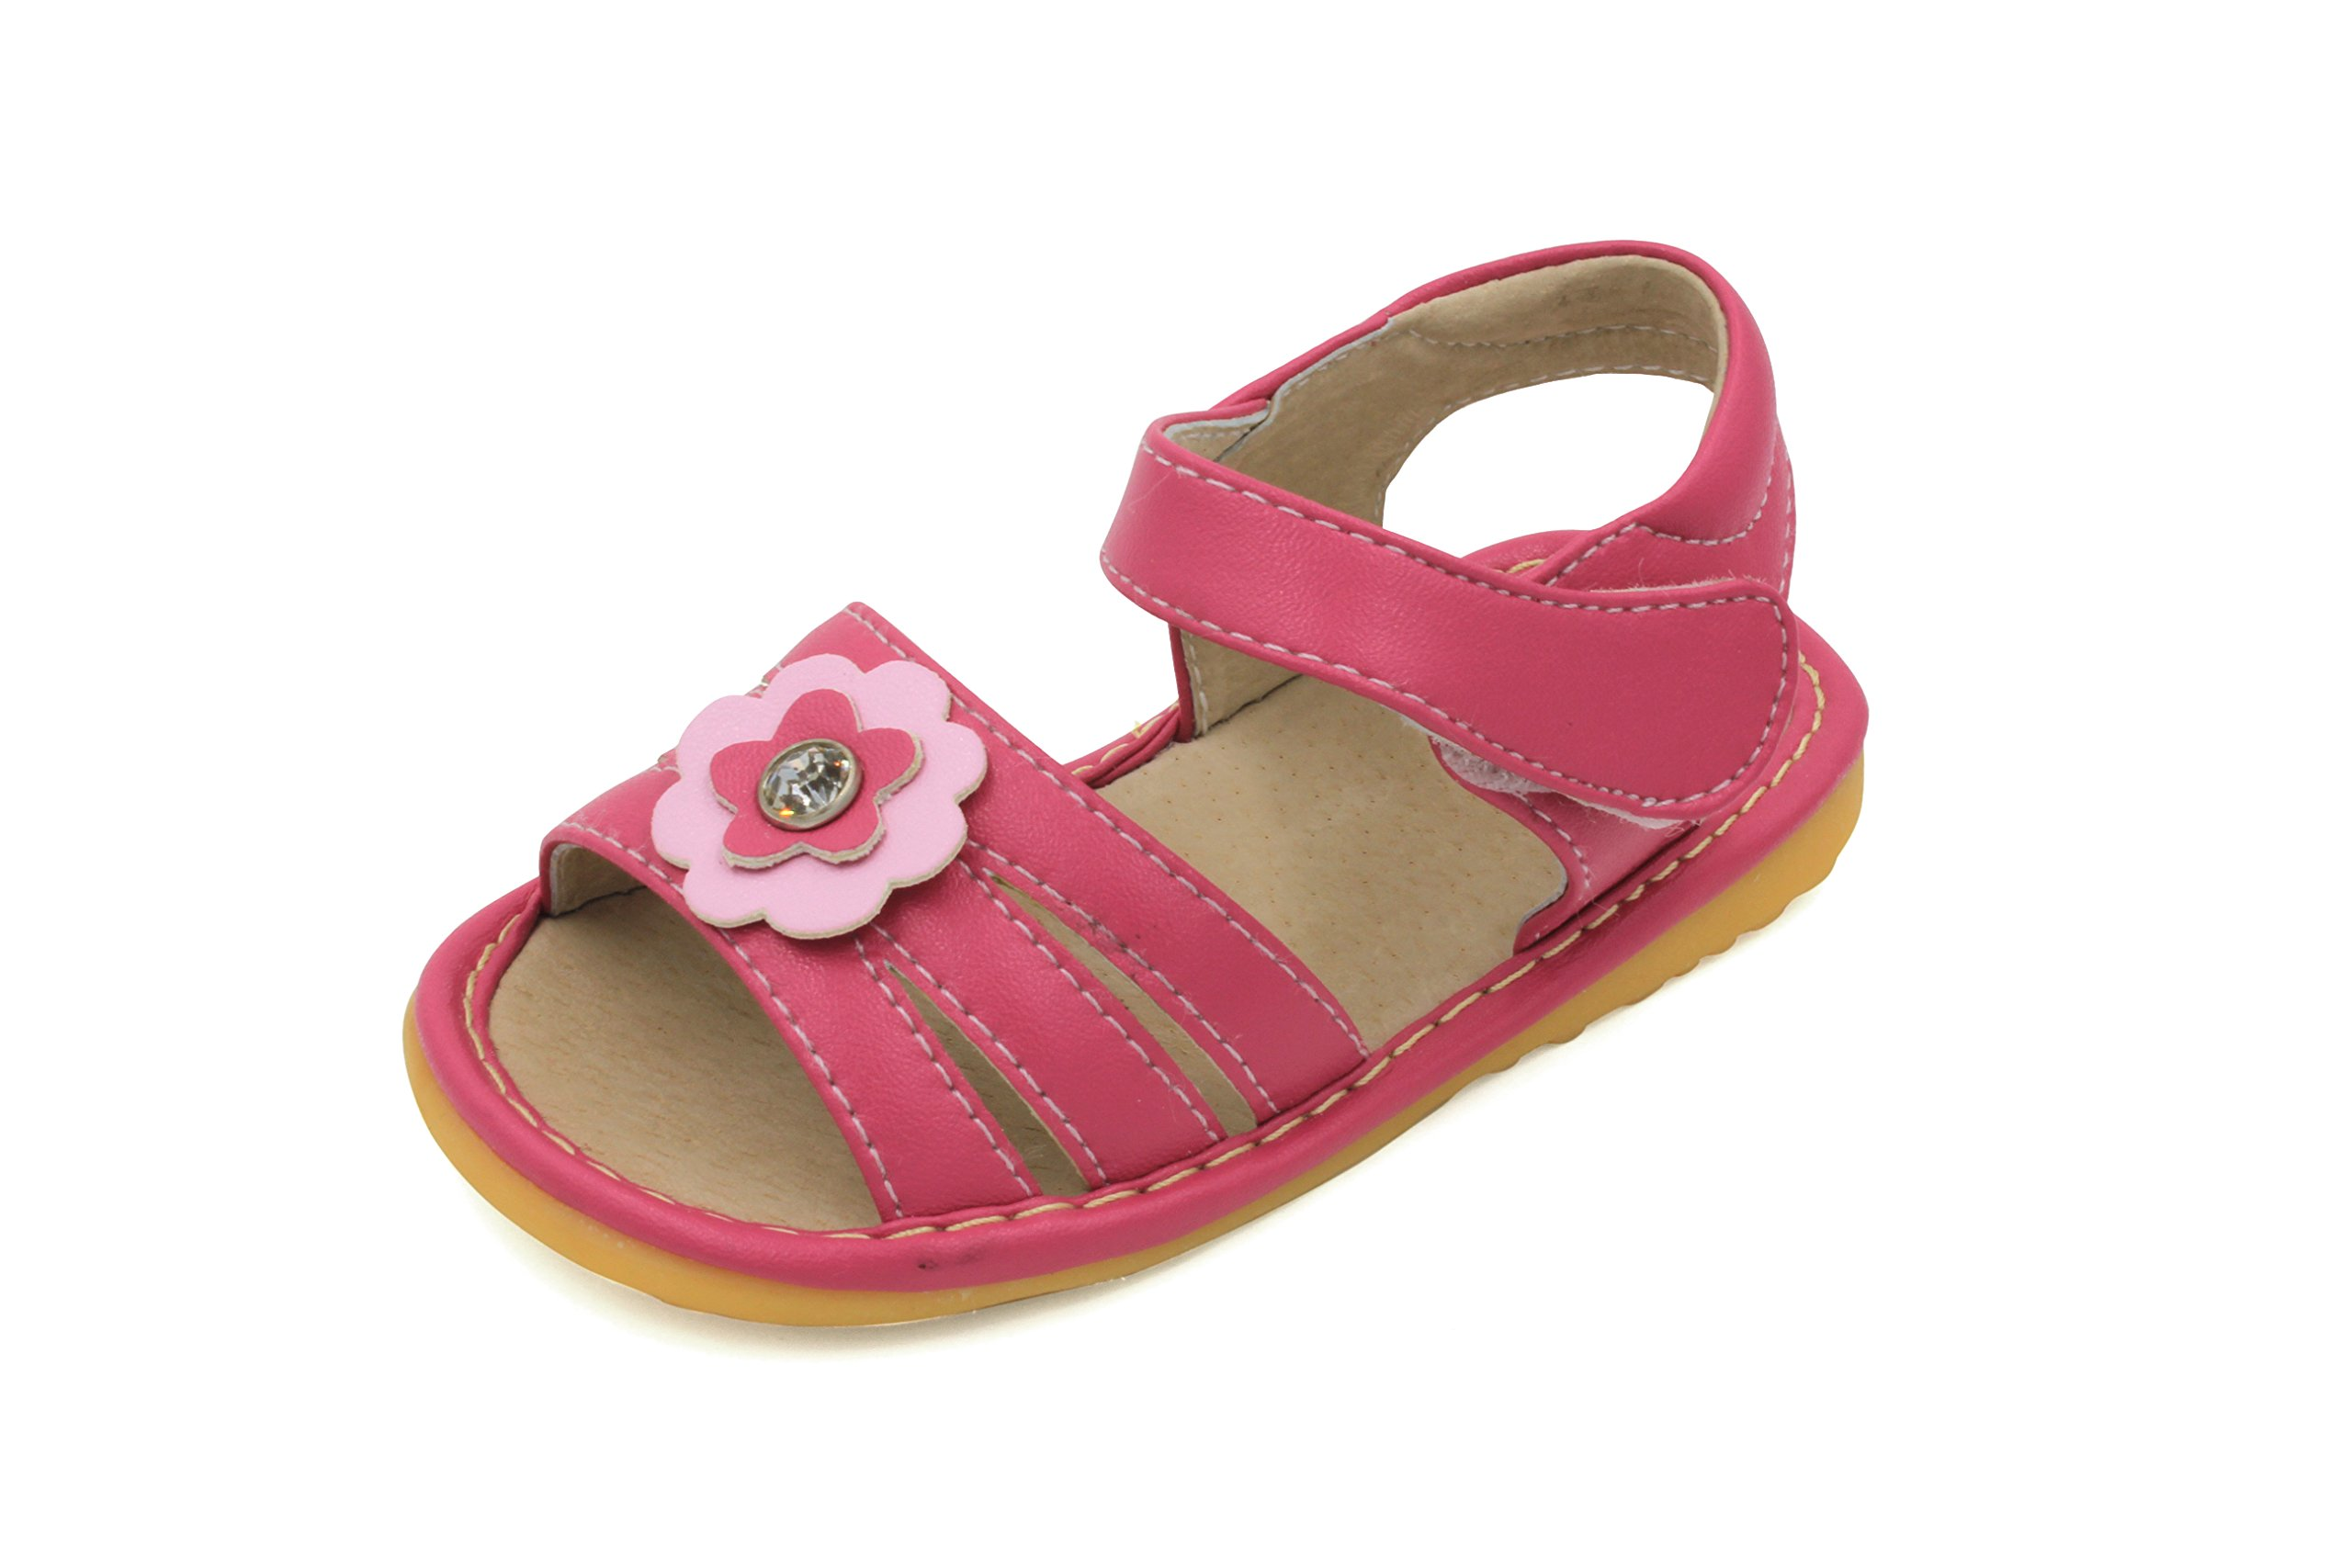 Little Mae's Boutique Hot Pink With Crystal Flower Girl Squeaky Sandals Shoes (8)